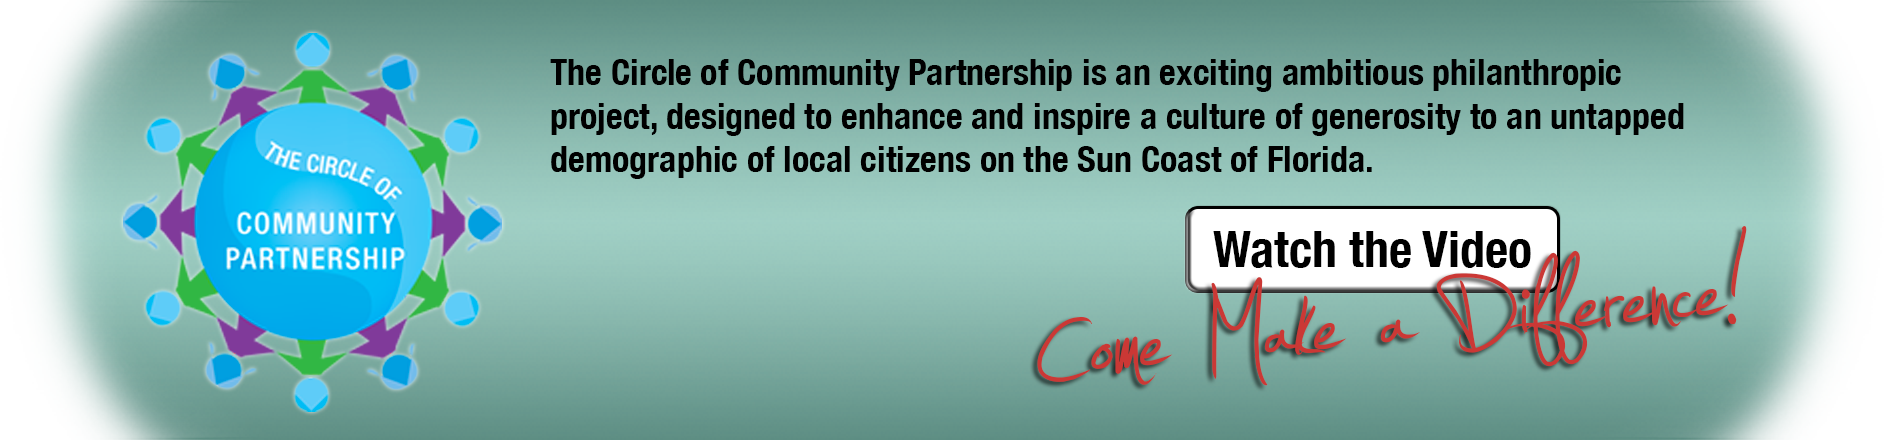 The Circle of Community Partnership is an exciting ambitious philanthropic project, designed to enhance and inspire a culture of generosity to an untapped demographic of local citizens on the Sun Coast of Florida.